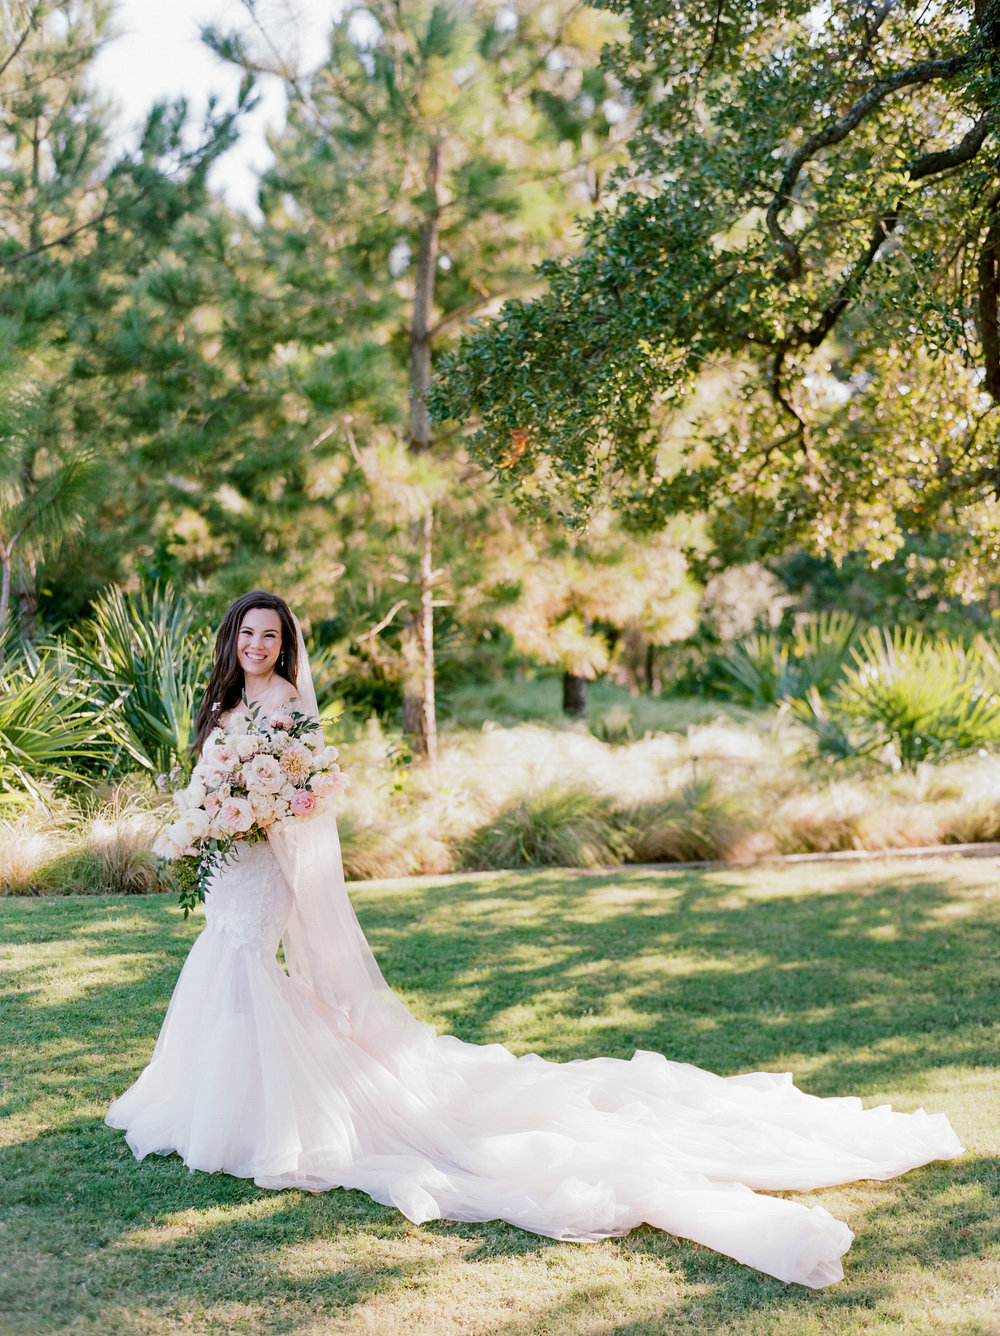 Martha-Stewart-Wedding-Dana-Fernandez-Photography-Josh-Texas-Film-Houston-Wedding-Fine-Art-Photographer-McGovern-Centennial-Gardens-Top-Best-143.jpg